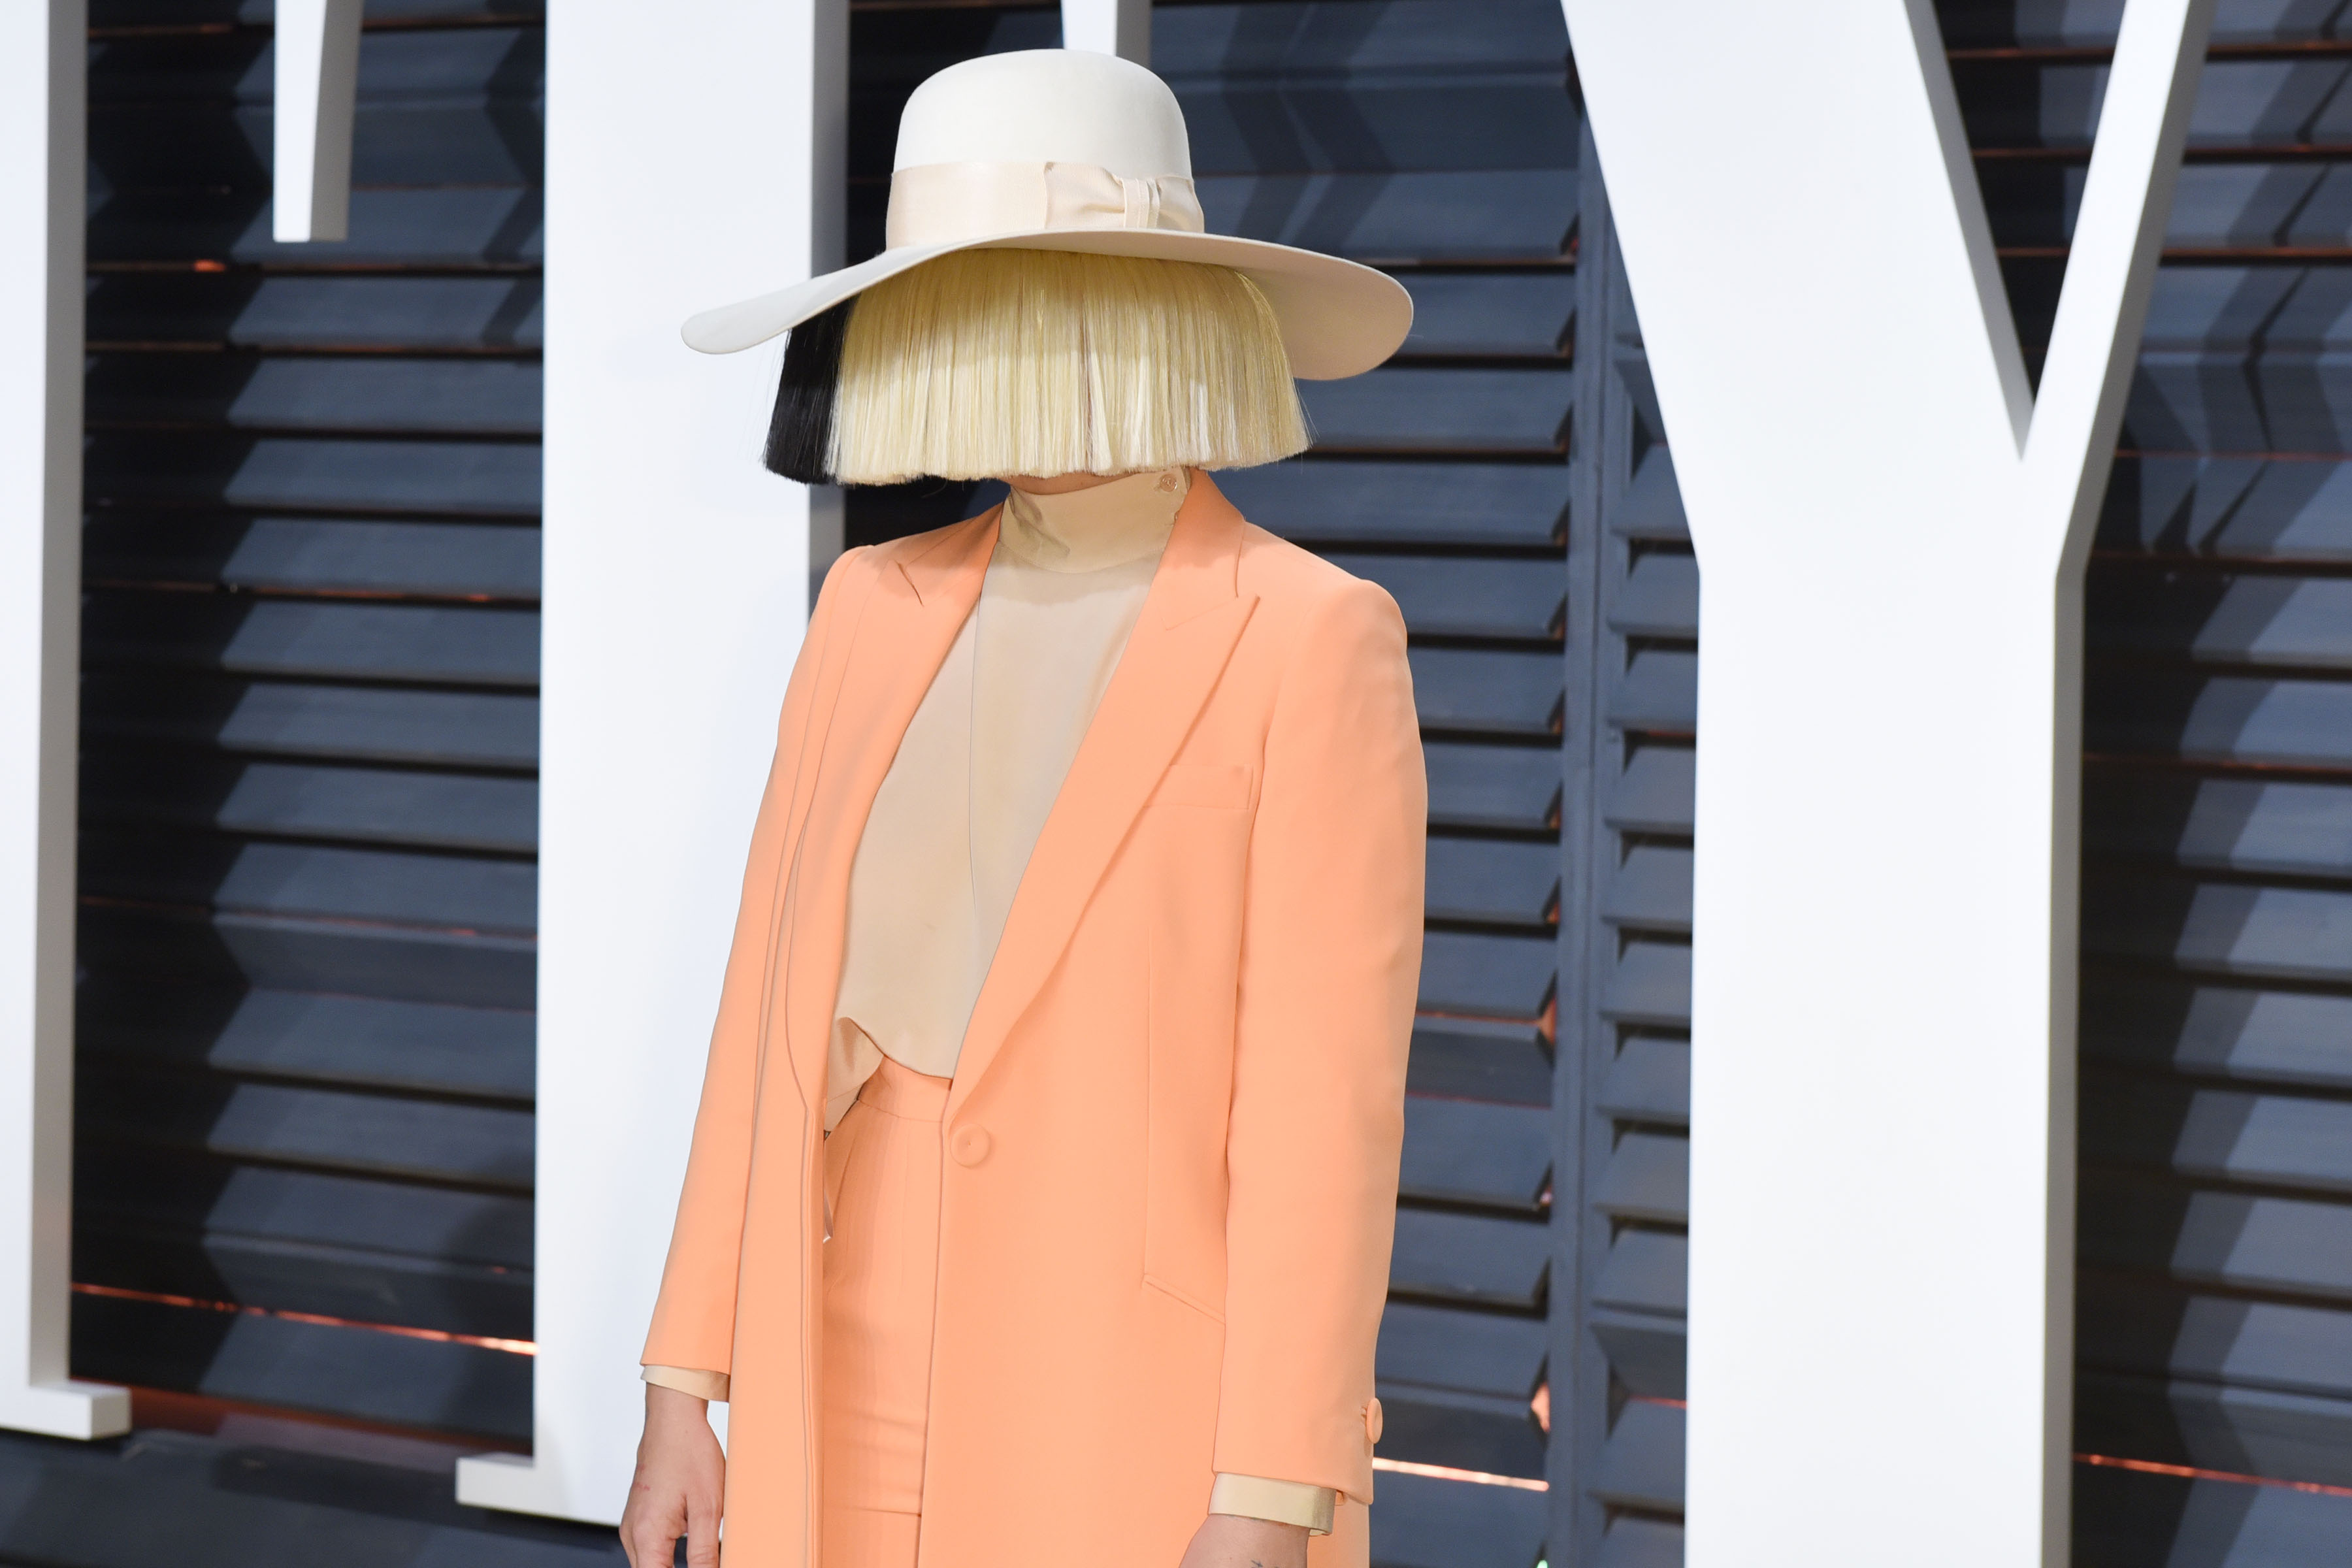 Sia Went Wigless In This Revealing Insta Pic Hellogiggles